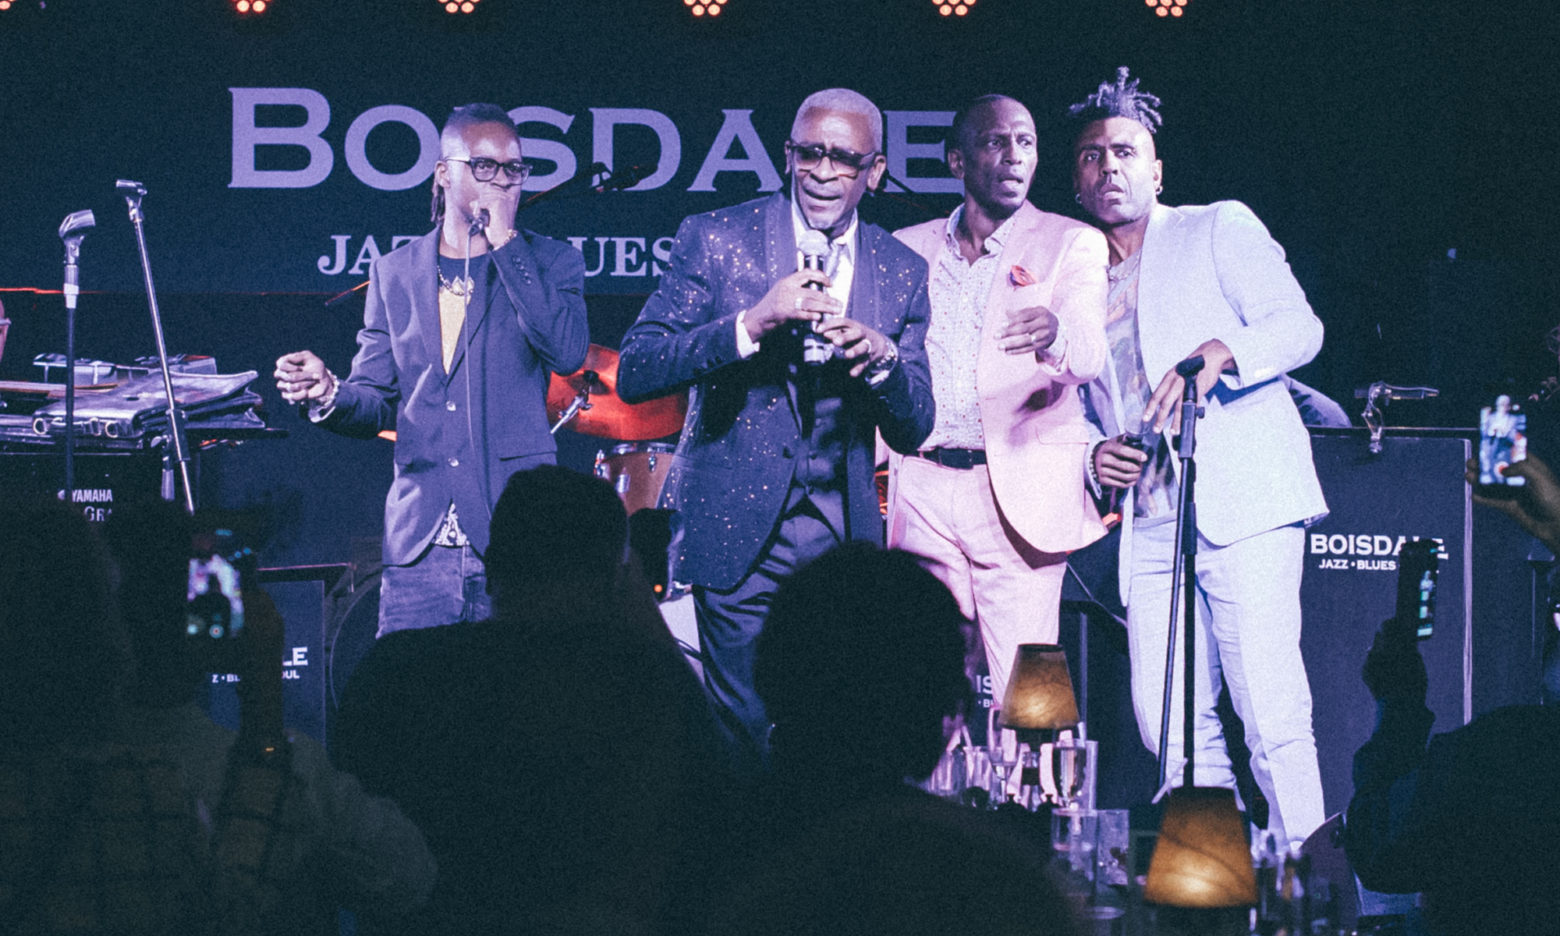 THE BOISDALE MUSIC AWARDS 2019